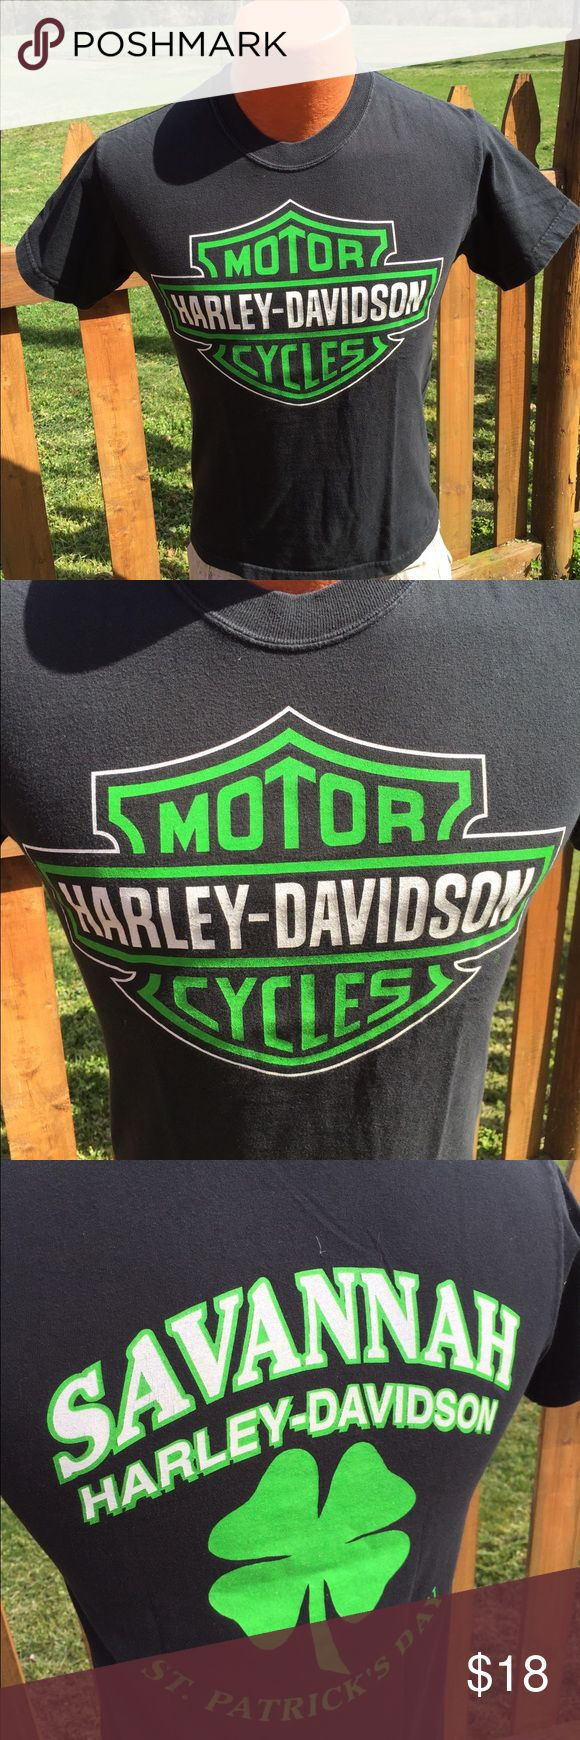 Harley Davidson St Patrick's Day Mens T Shirt Size small. Super gently preowned. Be sure to view the other items in our closet. We offer both women's and Mens items in a variety of sizes. Bundle and save!! Thank you for viewing our item!! Harley-Davidson Shirts Tees - Short Sleeve